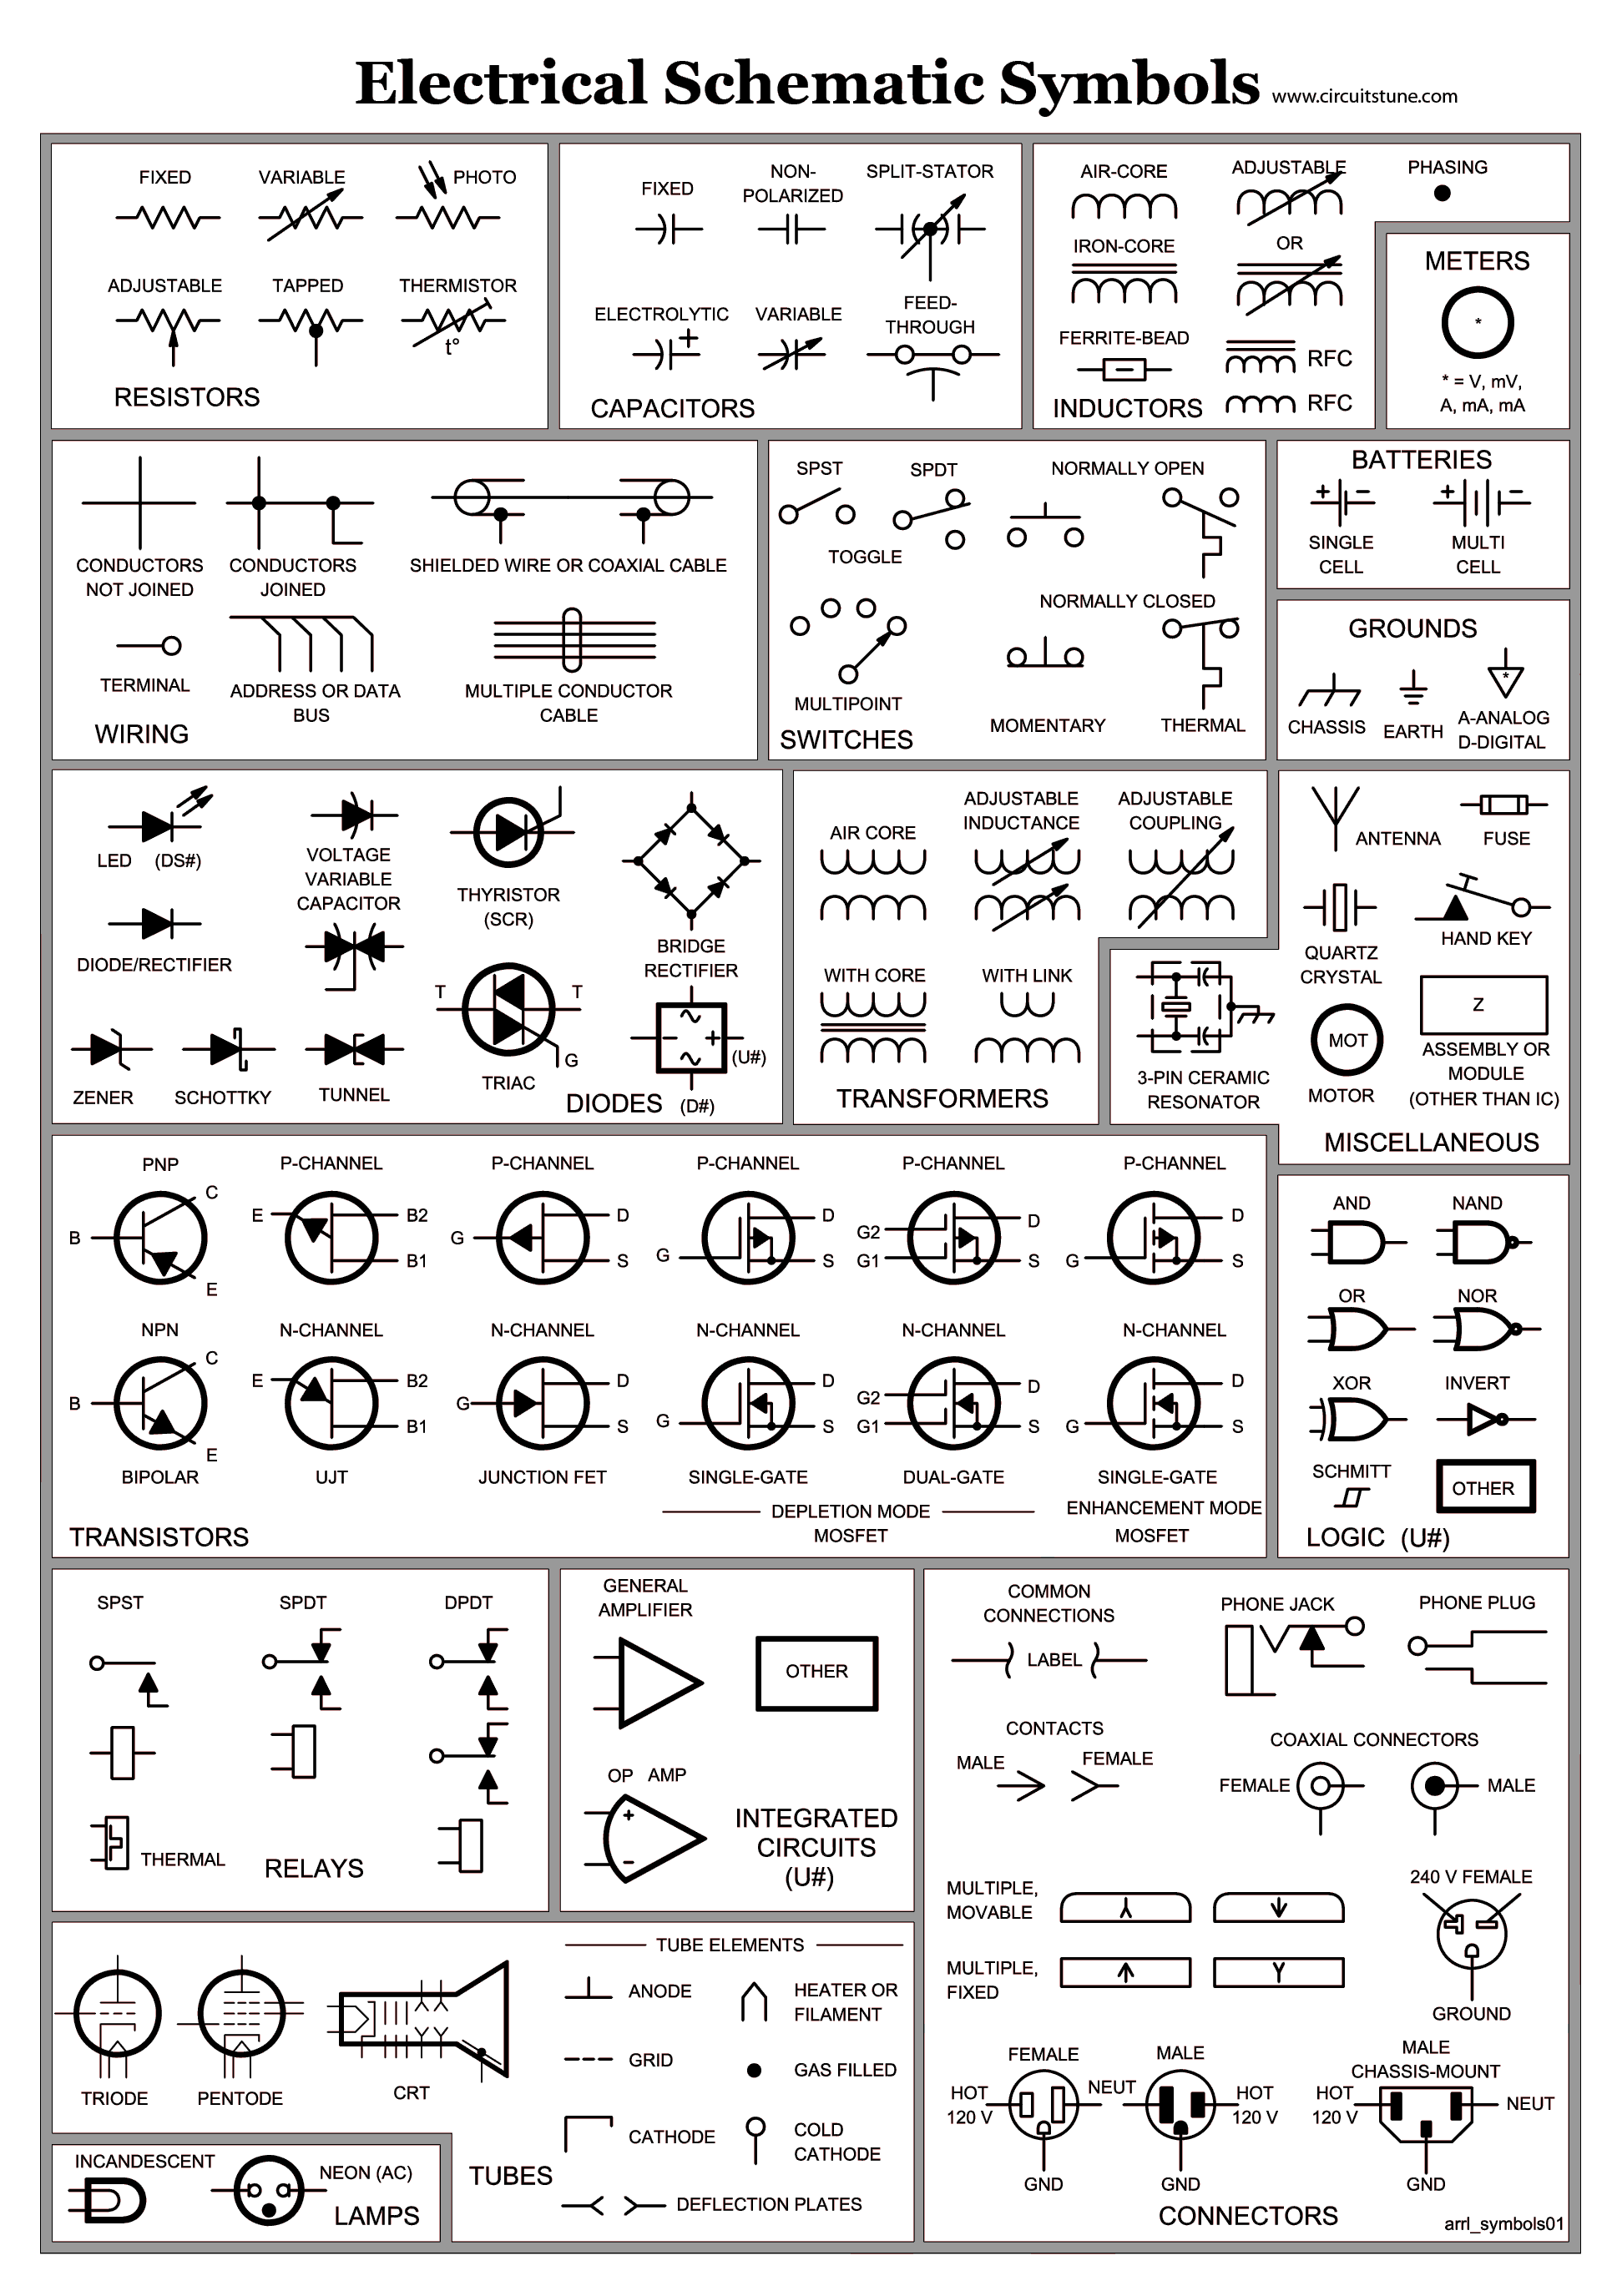 Electrical Schematic Symbols Electrical Schematic Symbols Electrical Circuit Diagram Electrical Wiring Diagram